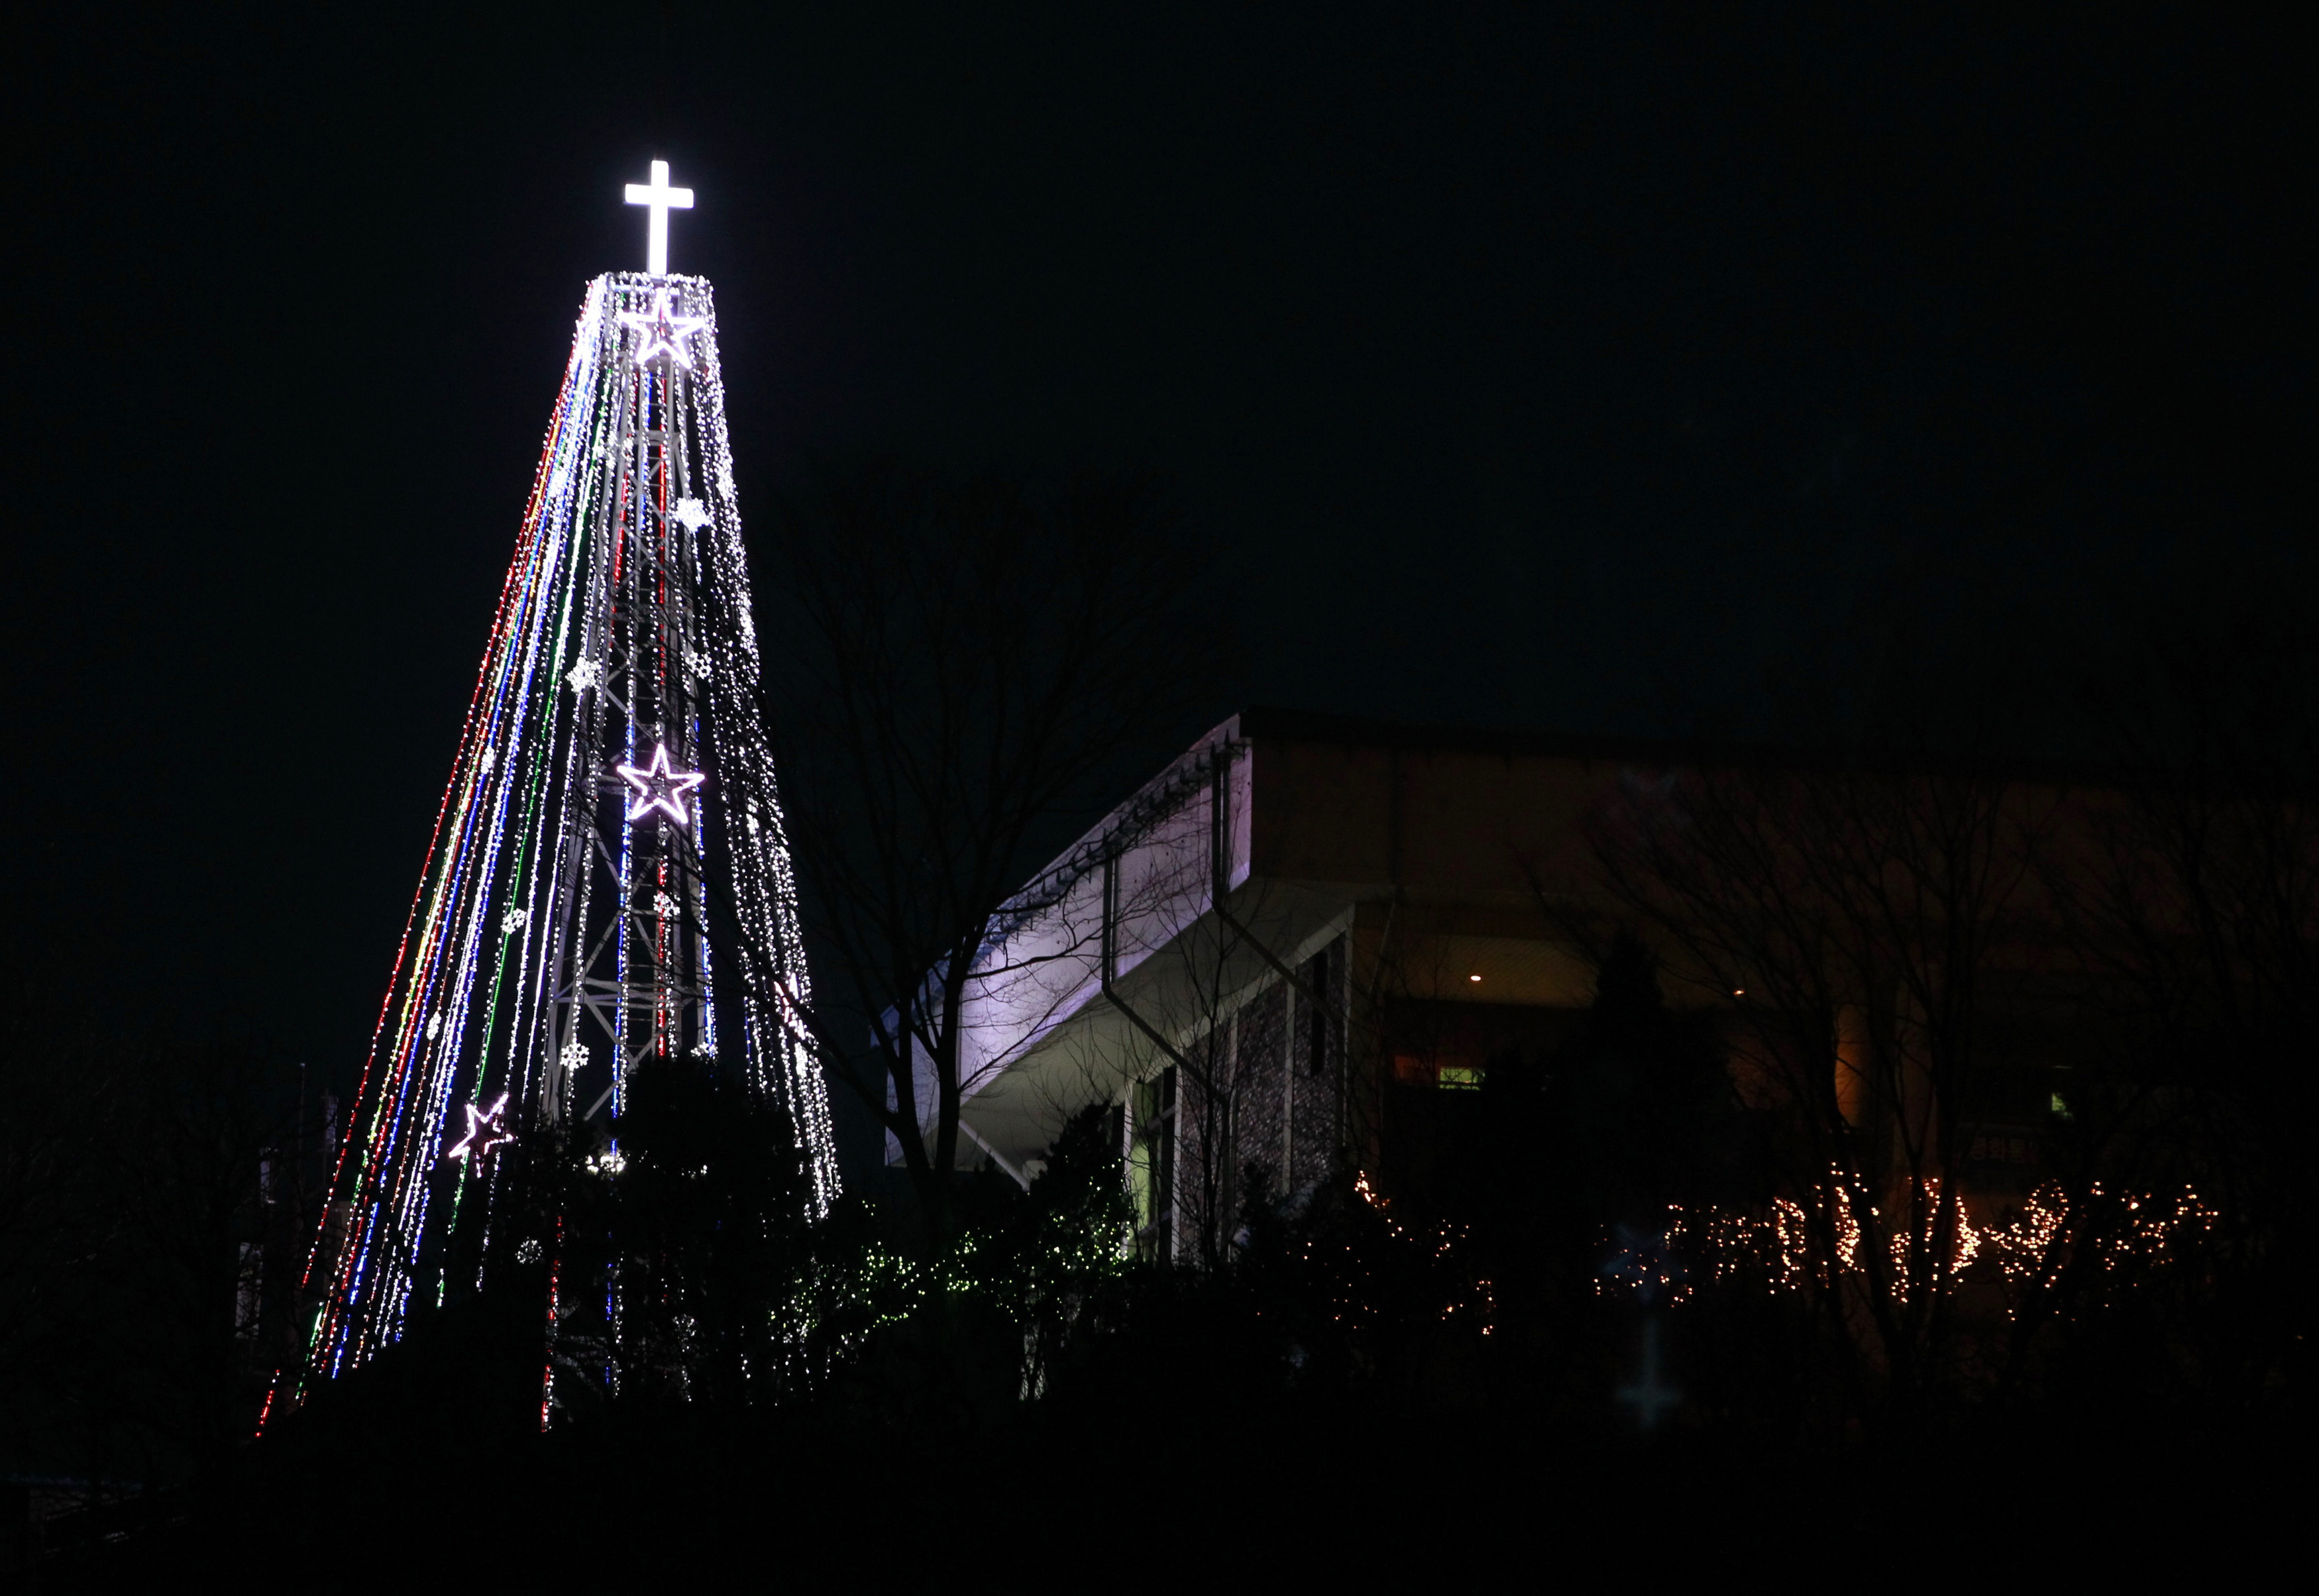 A Christmas'tree' just south of the demilitarised zone (DMZ) separating the two Koreas in Gimpo, west of Seoul as seen on December 21, 2010